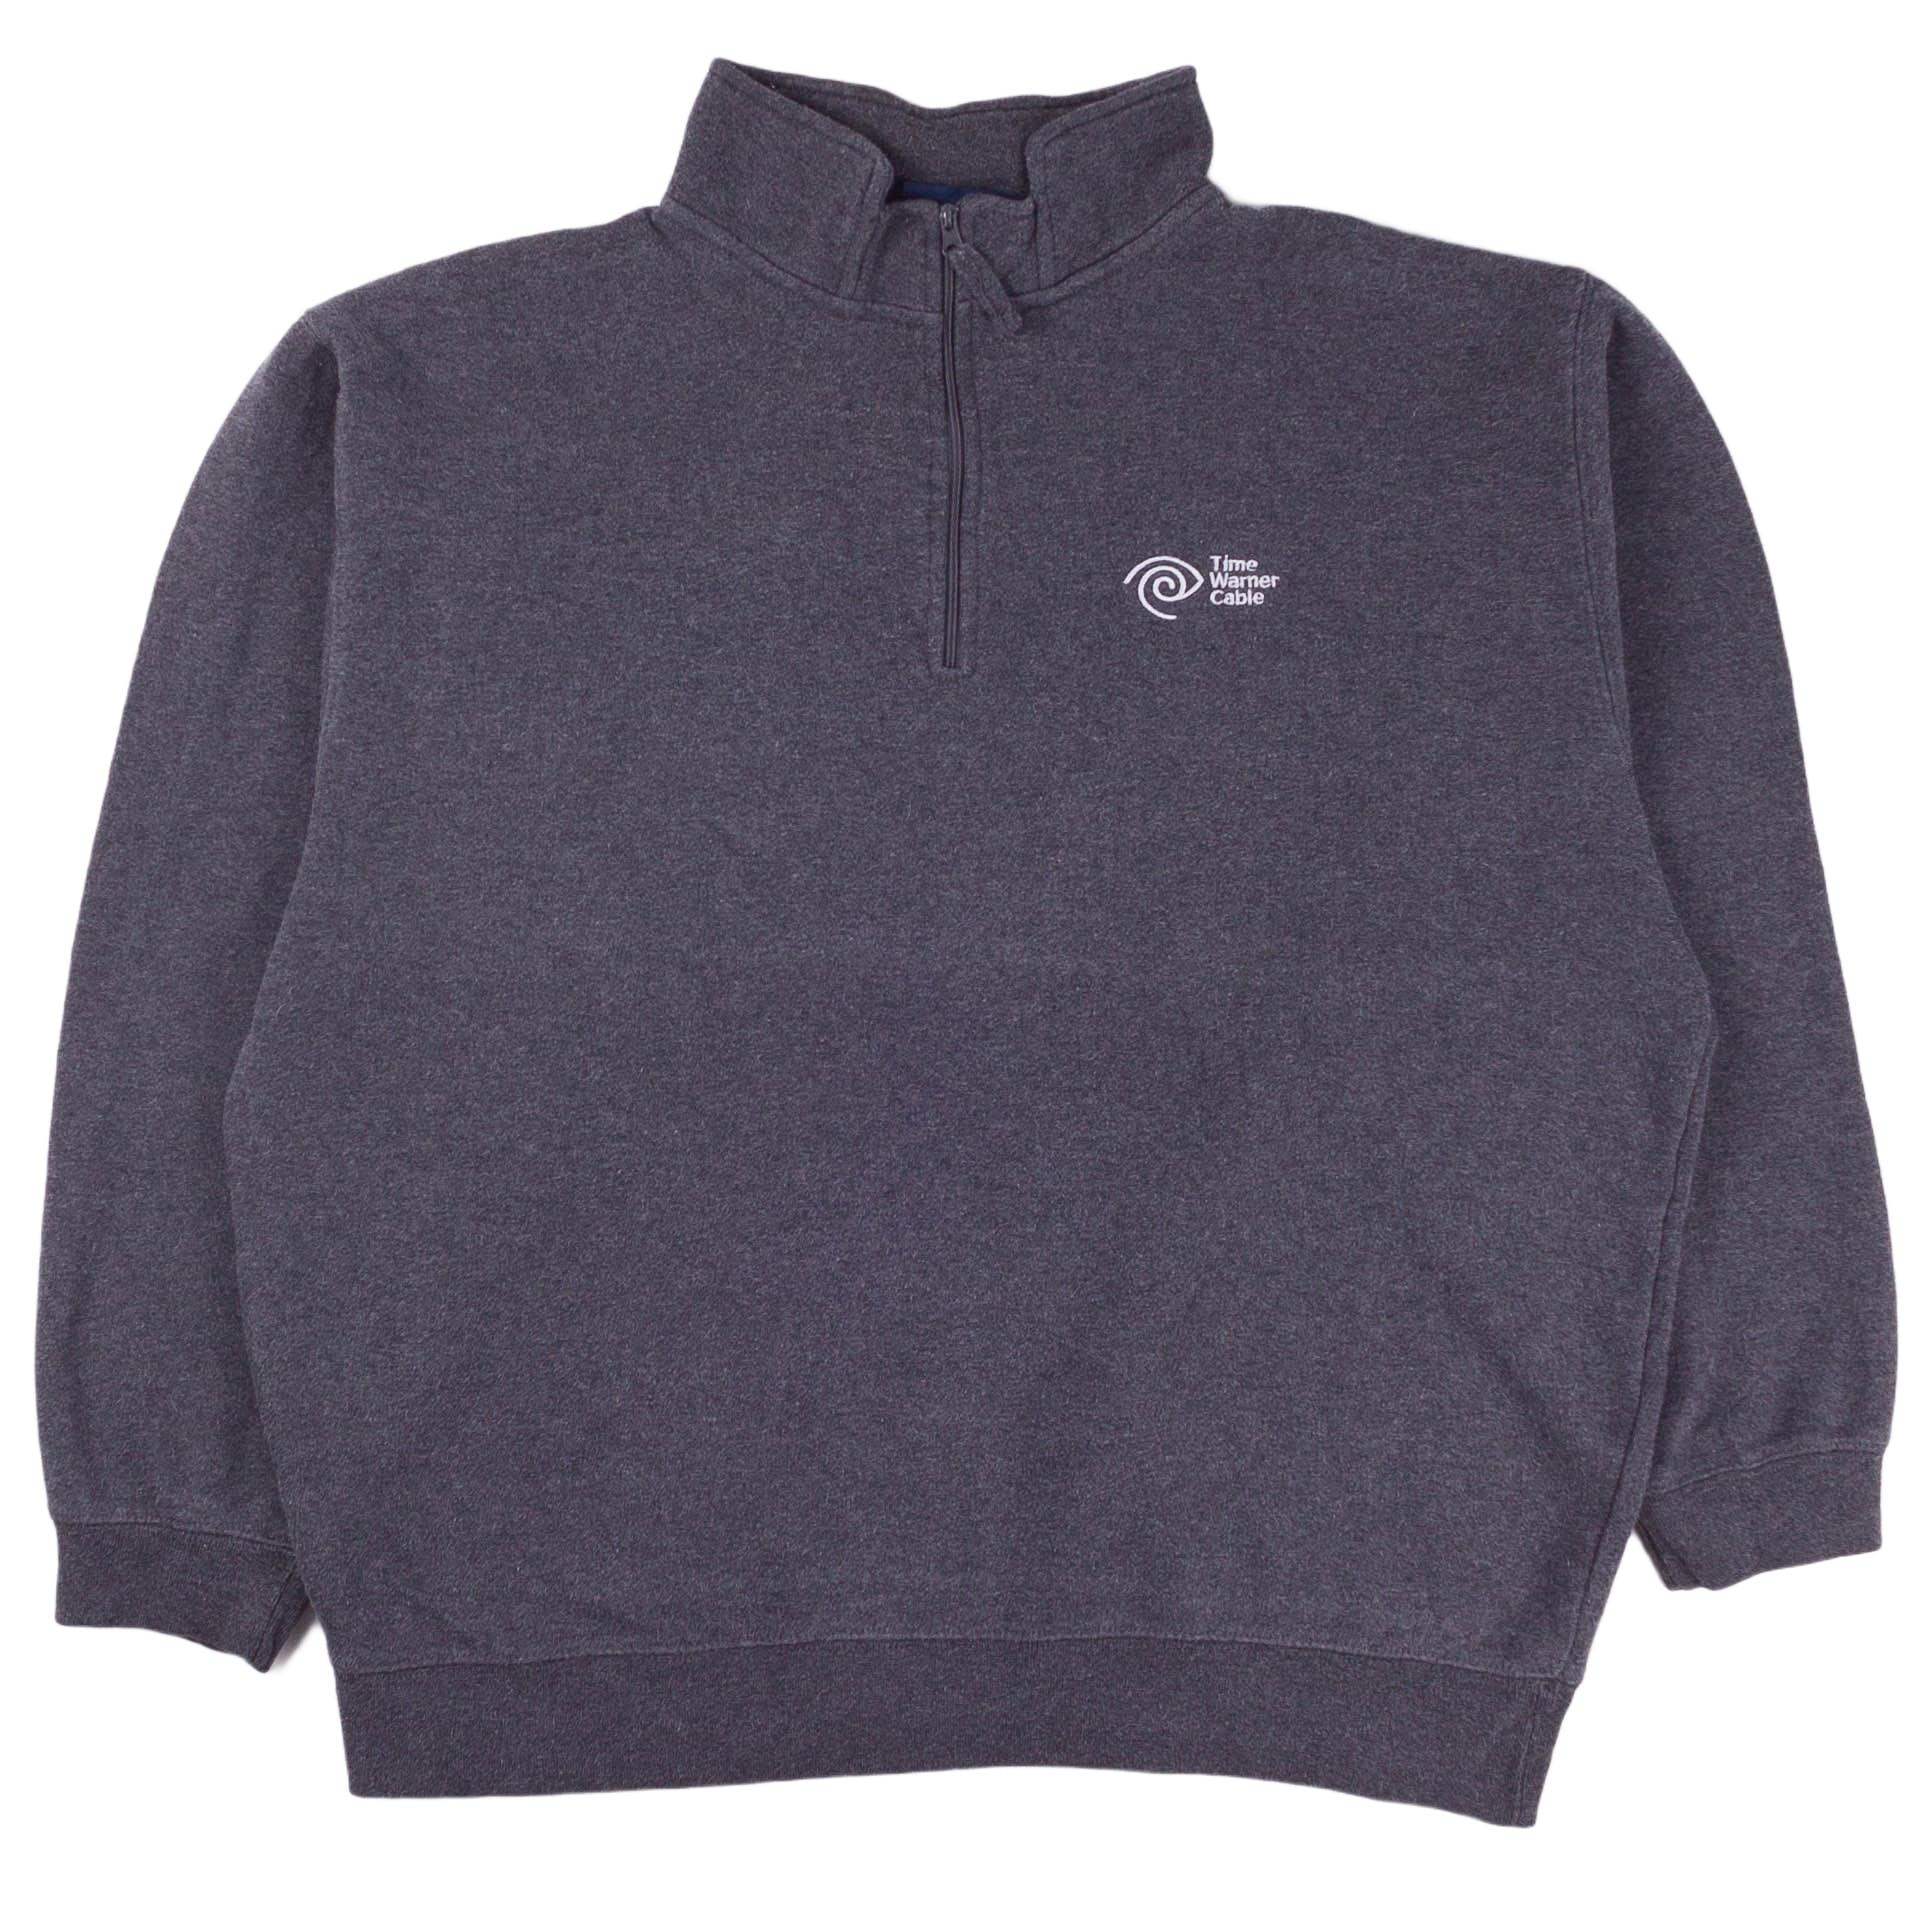 Time Warner Cable 1/4 Zip Sweatshirt